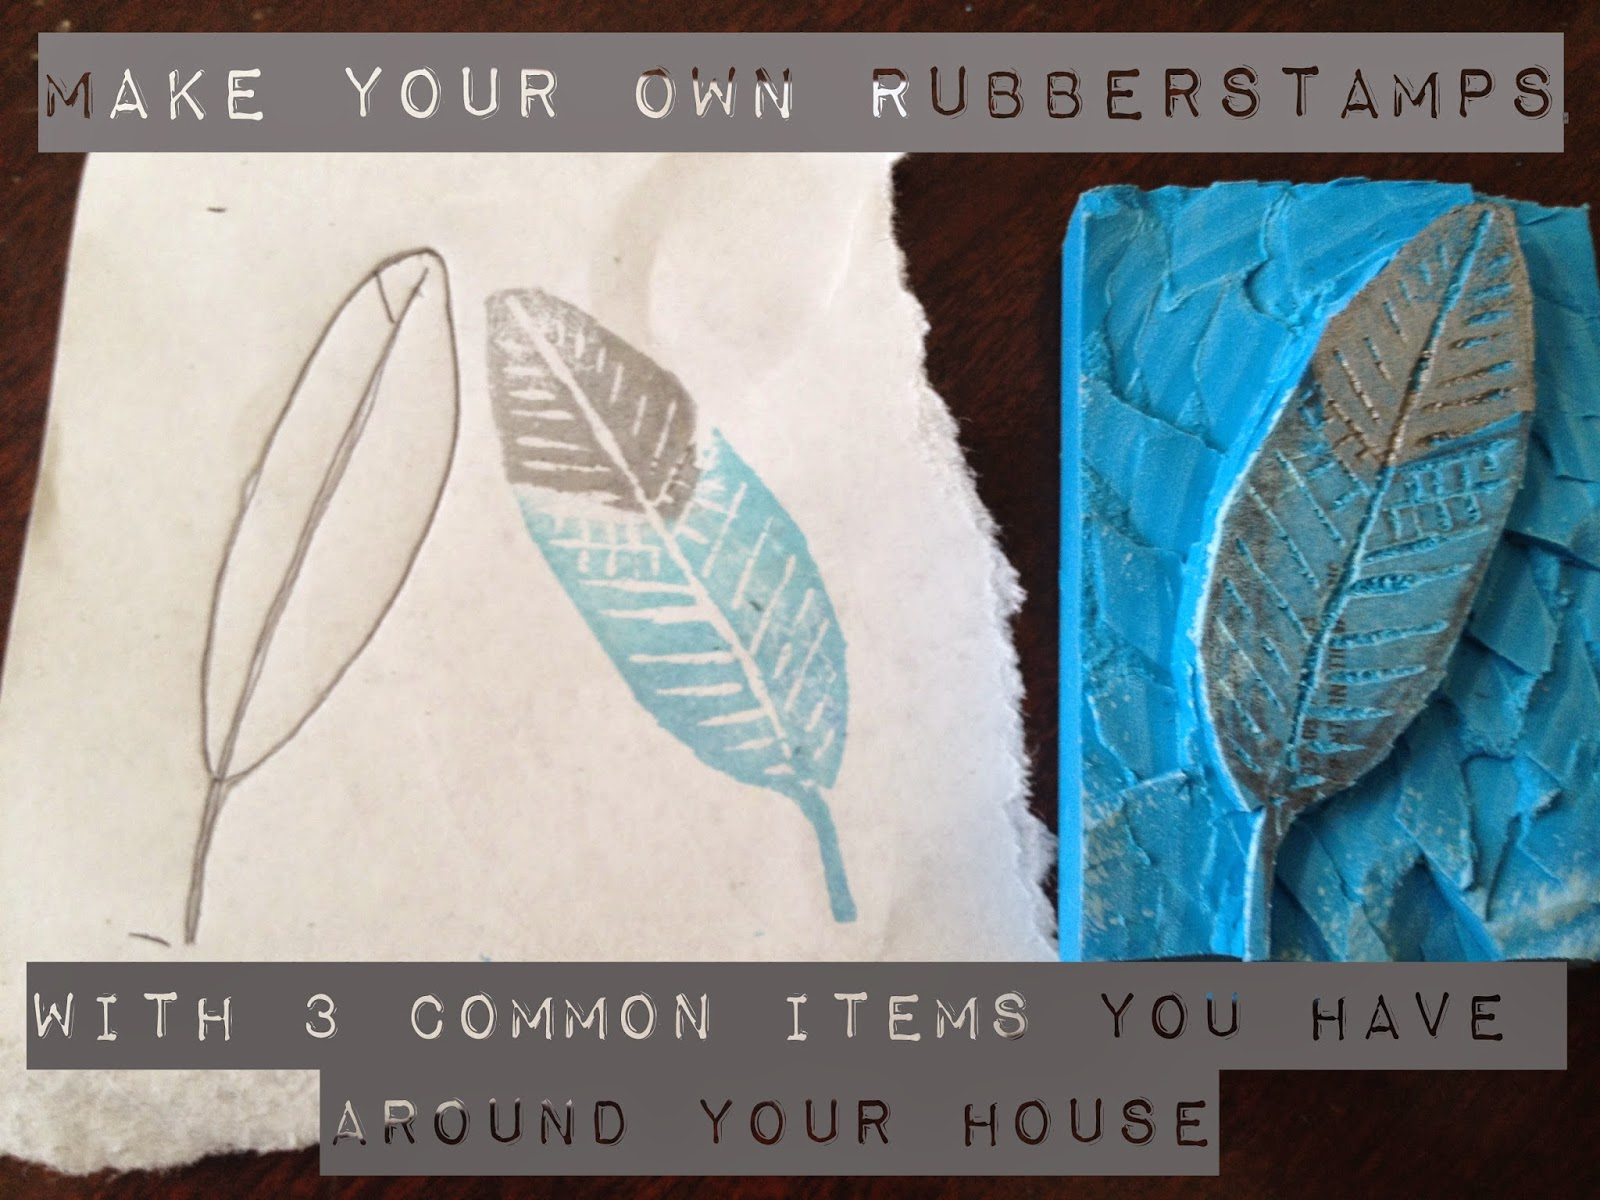 spain hill farm make your own rubberstamps with 3 things you